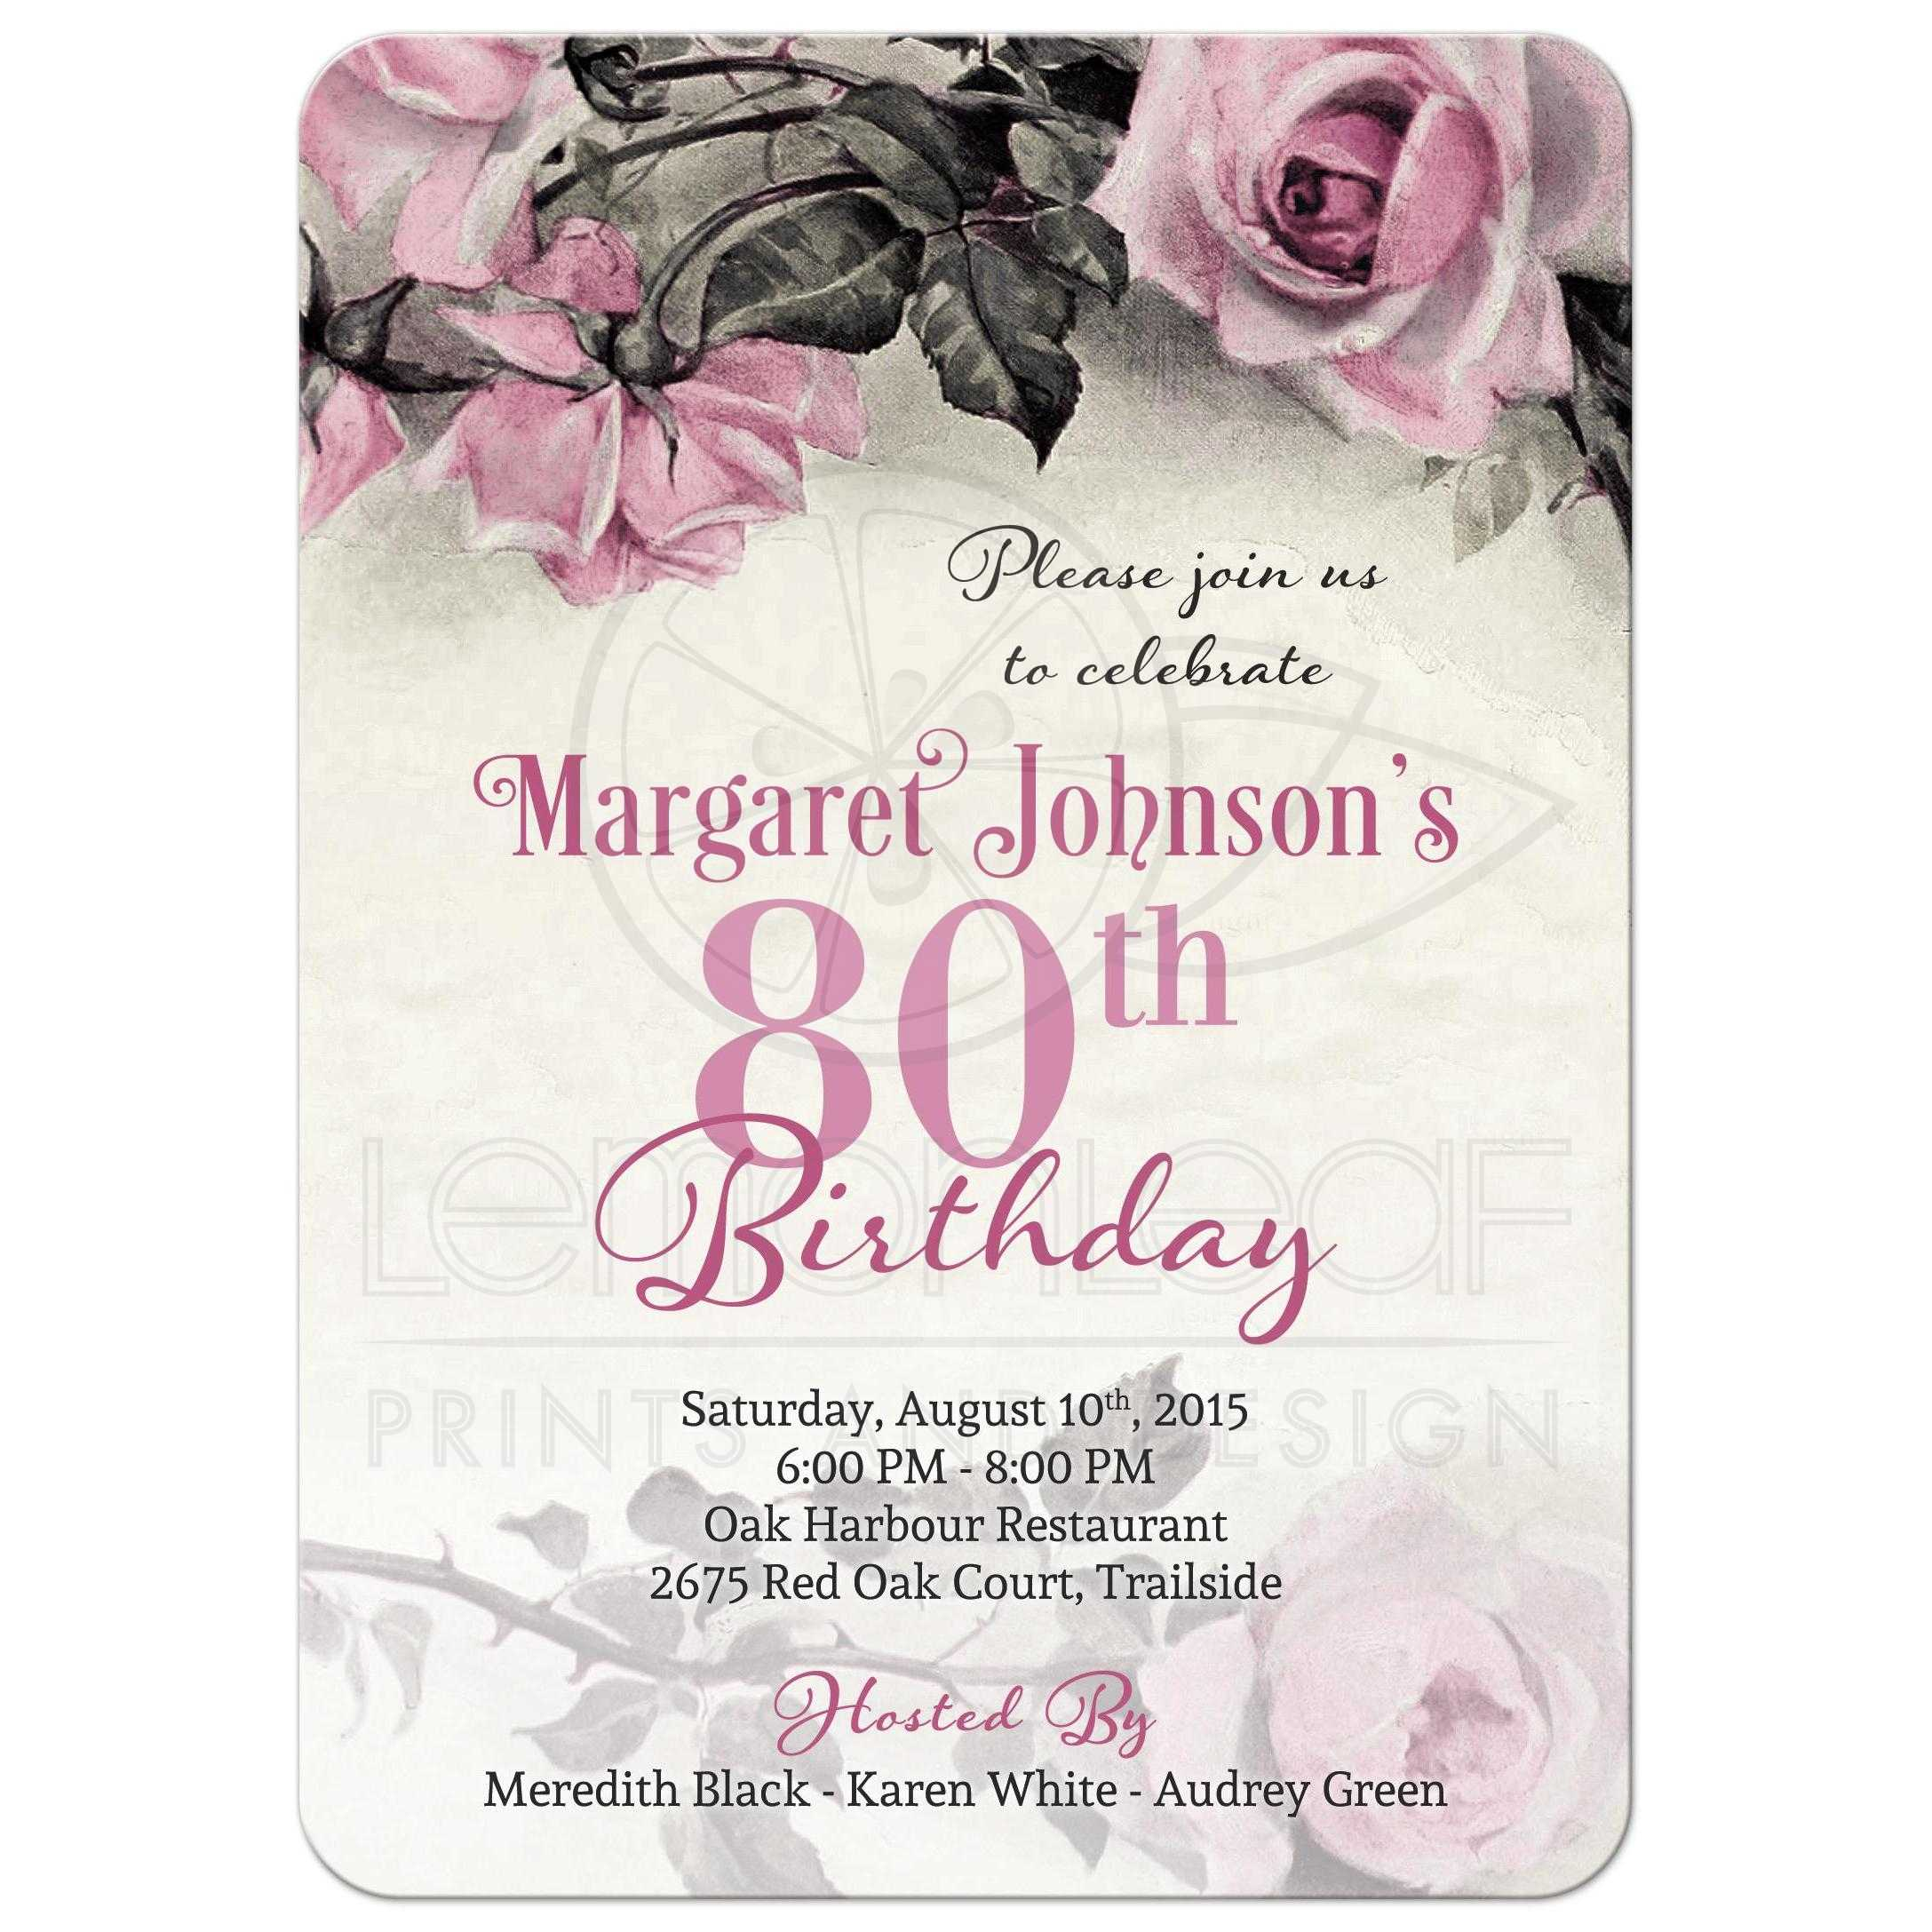 Sweet 16 Invitations Online was good invitation design